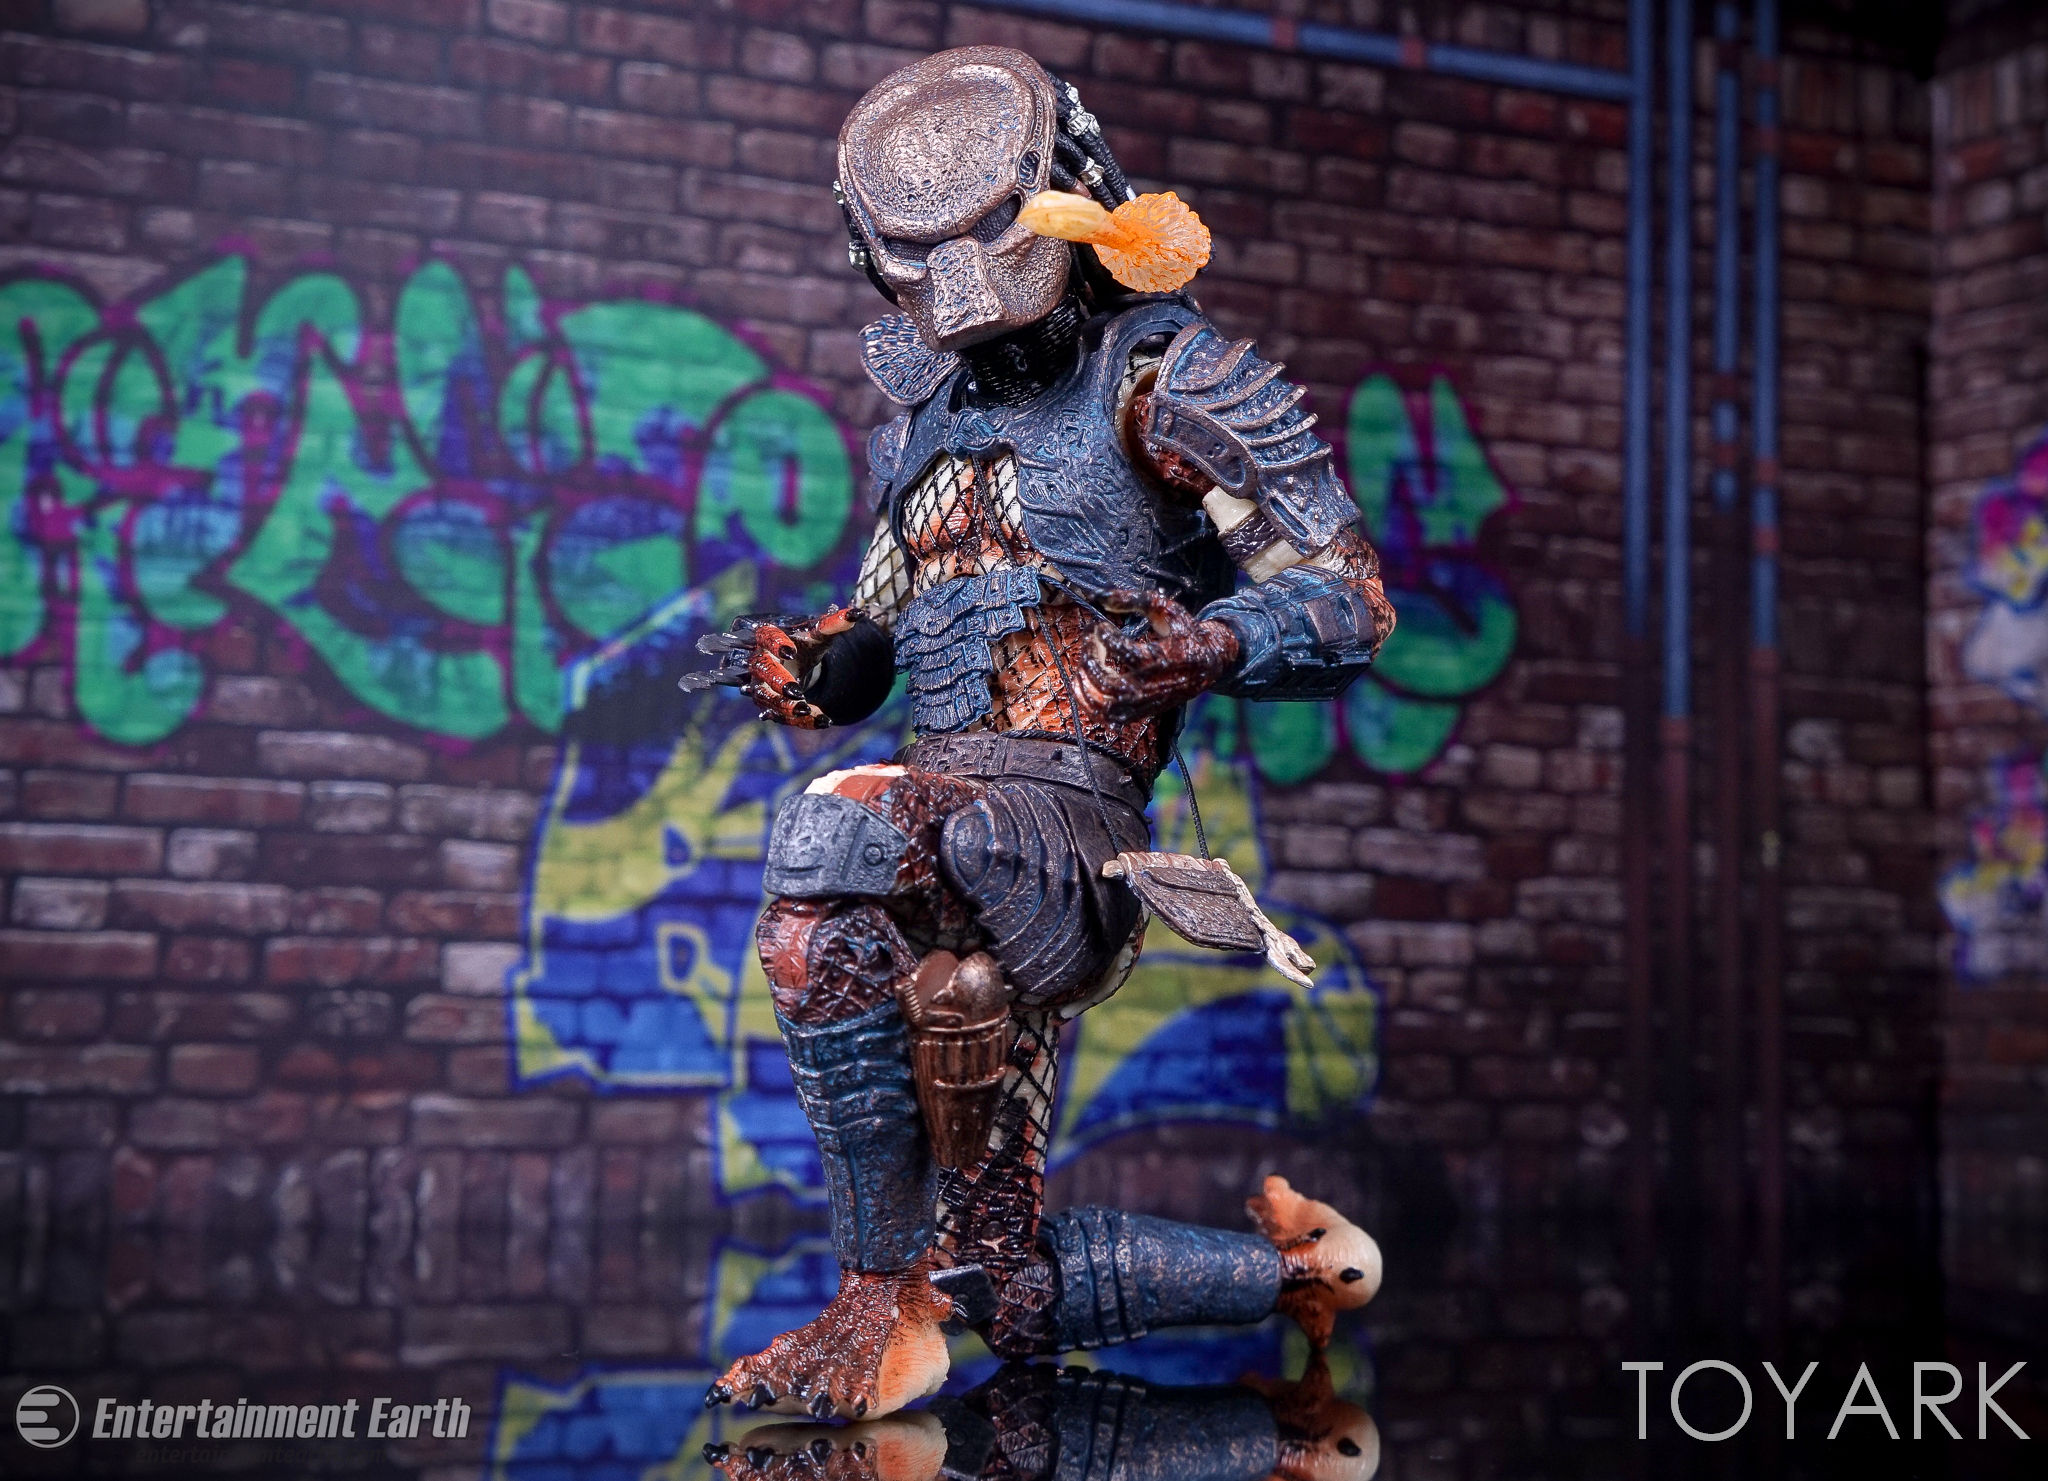 http://news.toyark.com/wp-content/uploads/sites/4/2017/03/NECA-Ultimate-City-Hunter-Predator-029.jpg